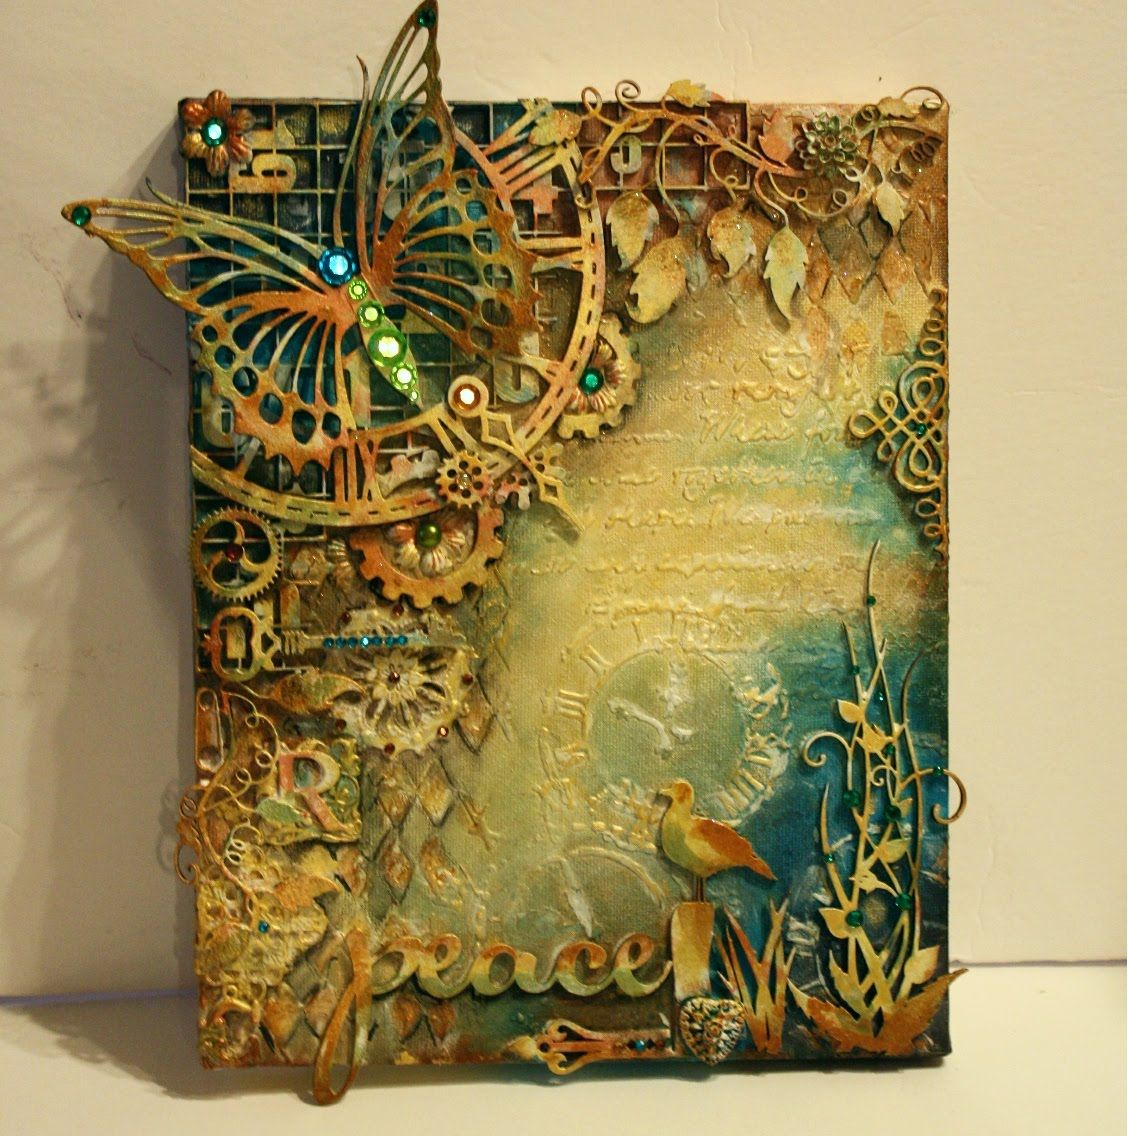 Mixed media canvas tutorial peace by gabrielle pollacco using mixed media canvas tutorial peace by gabrielle pollacco using dusty attic chipboard and shimmerz baditri Image collections